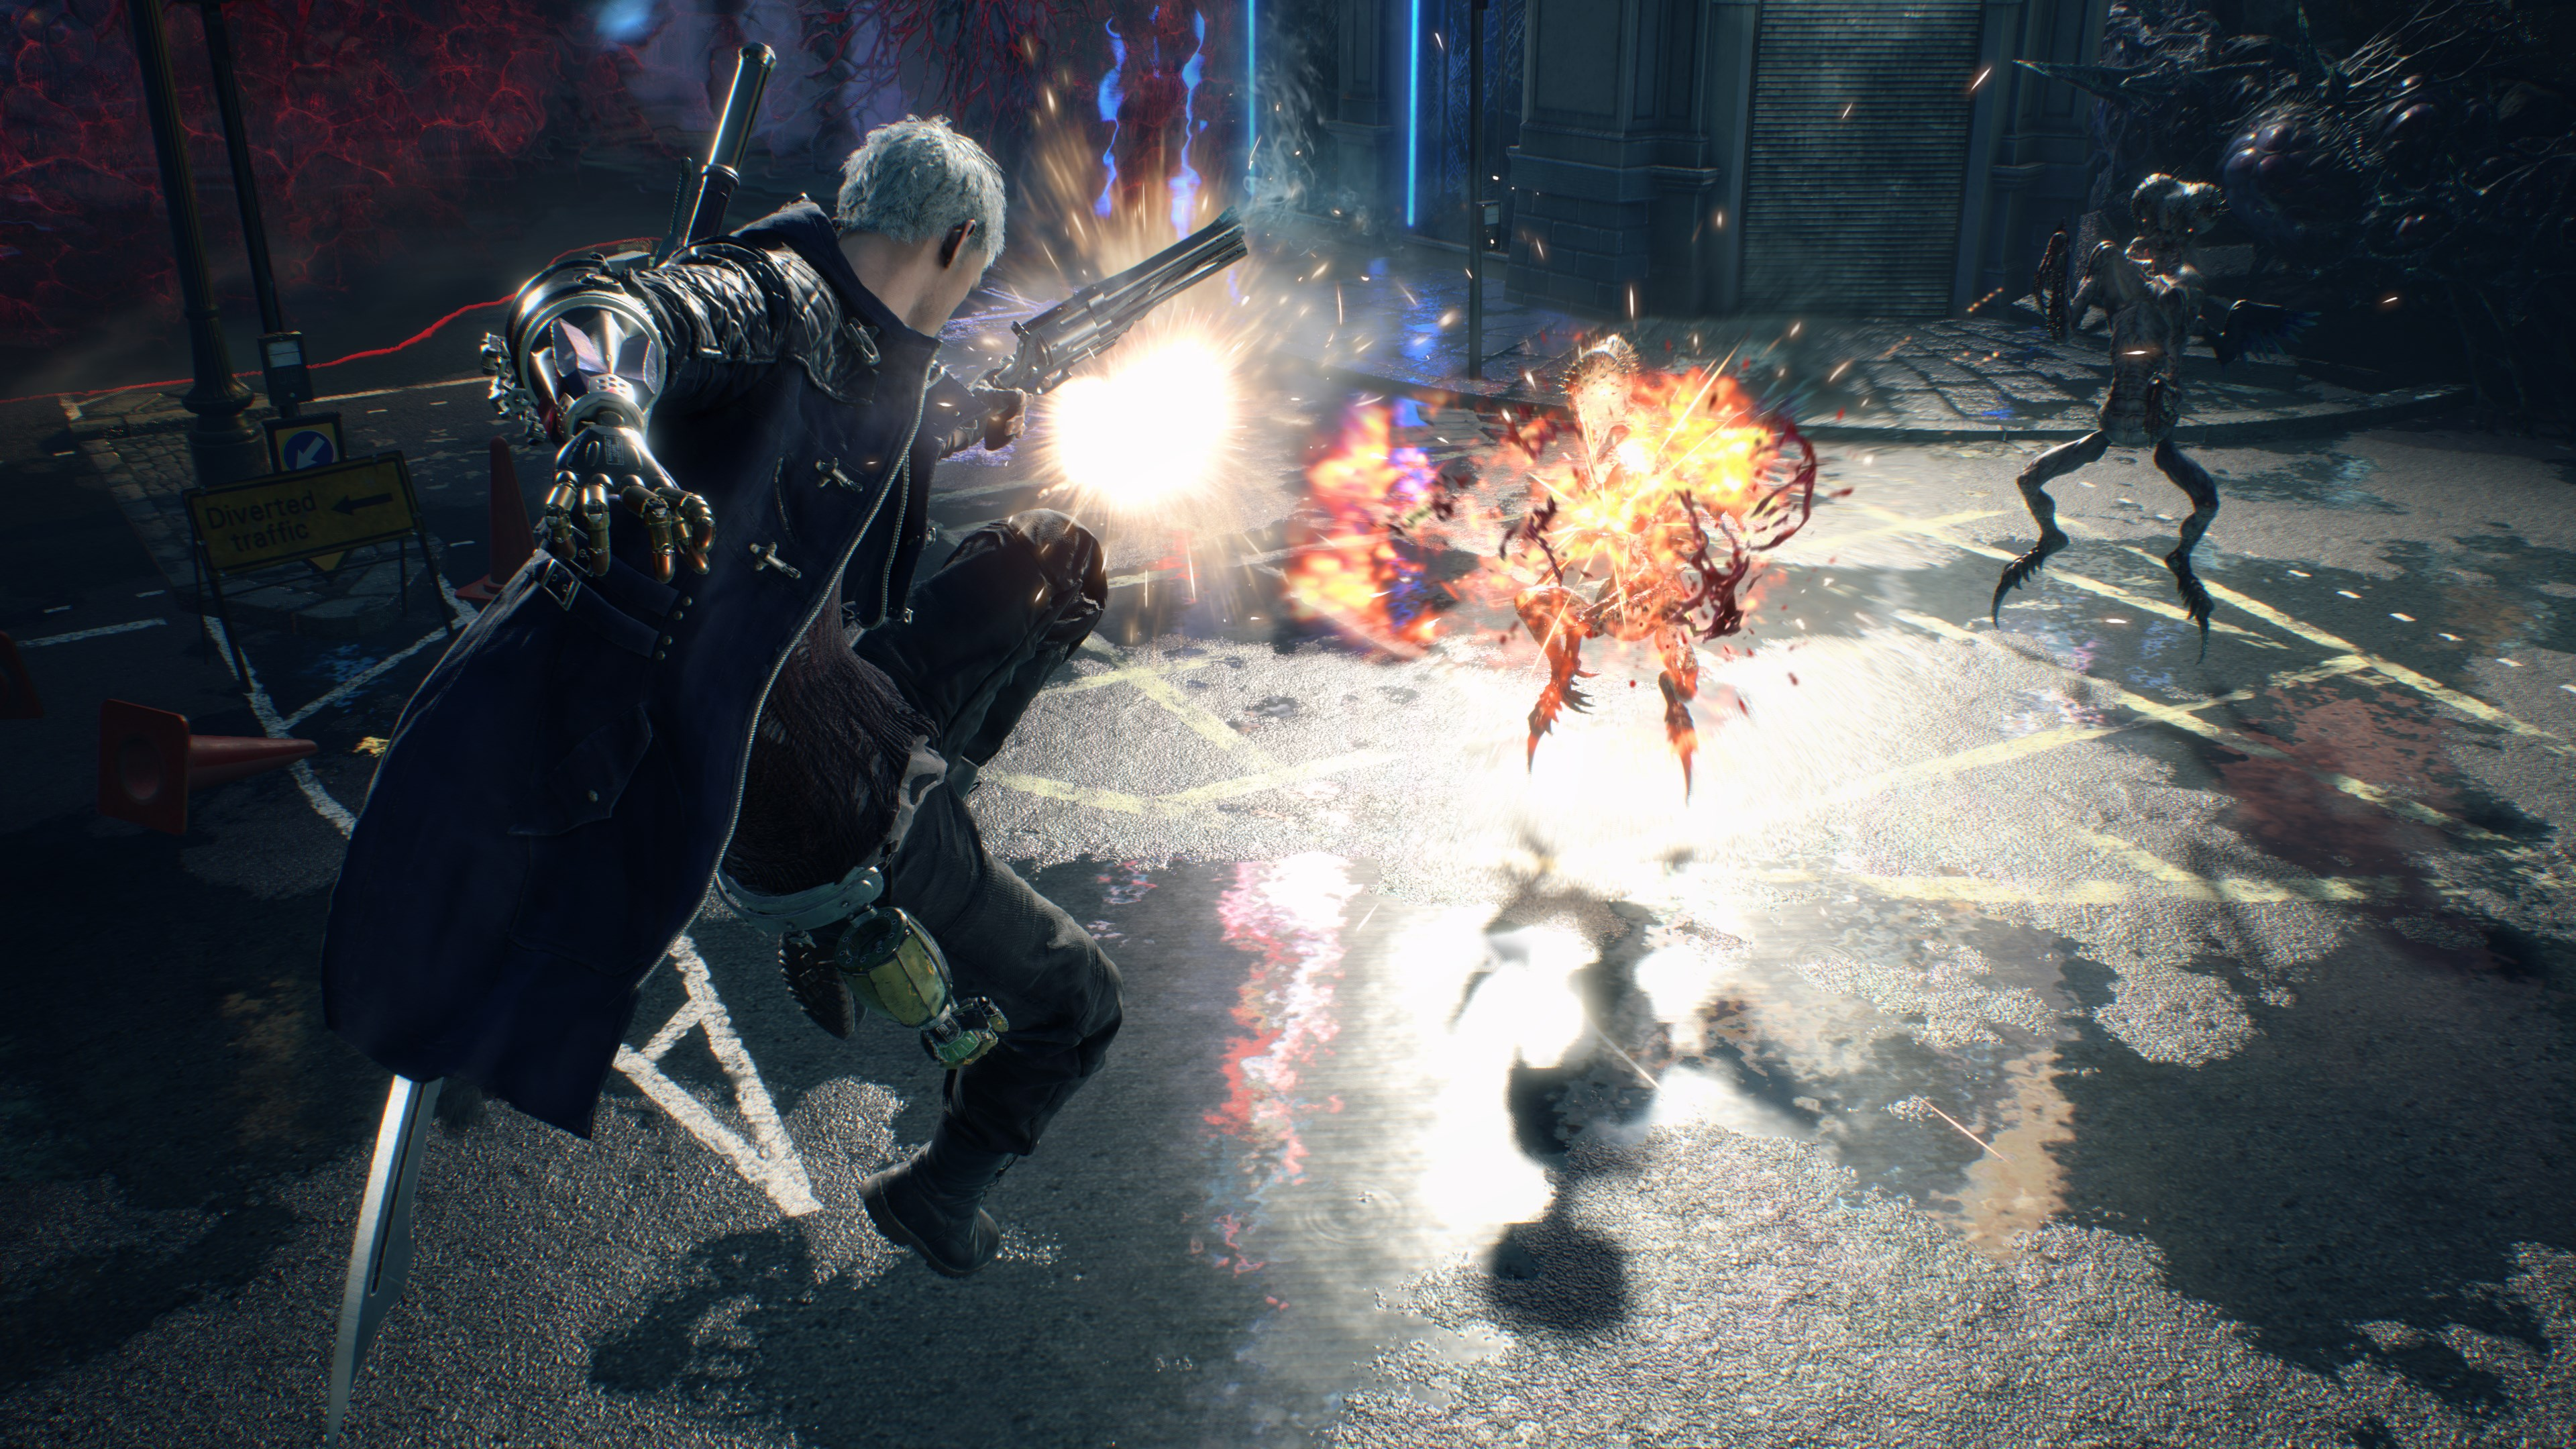 New Screenshots For Devil May Cry 5 Show Nero And Dante In Action